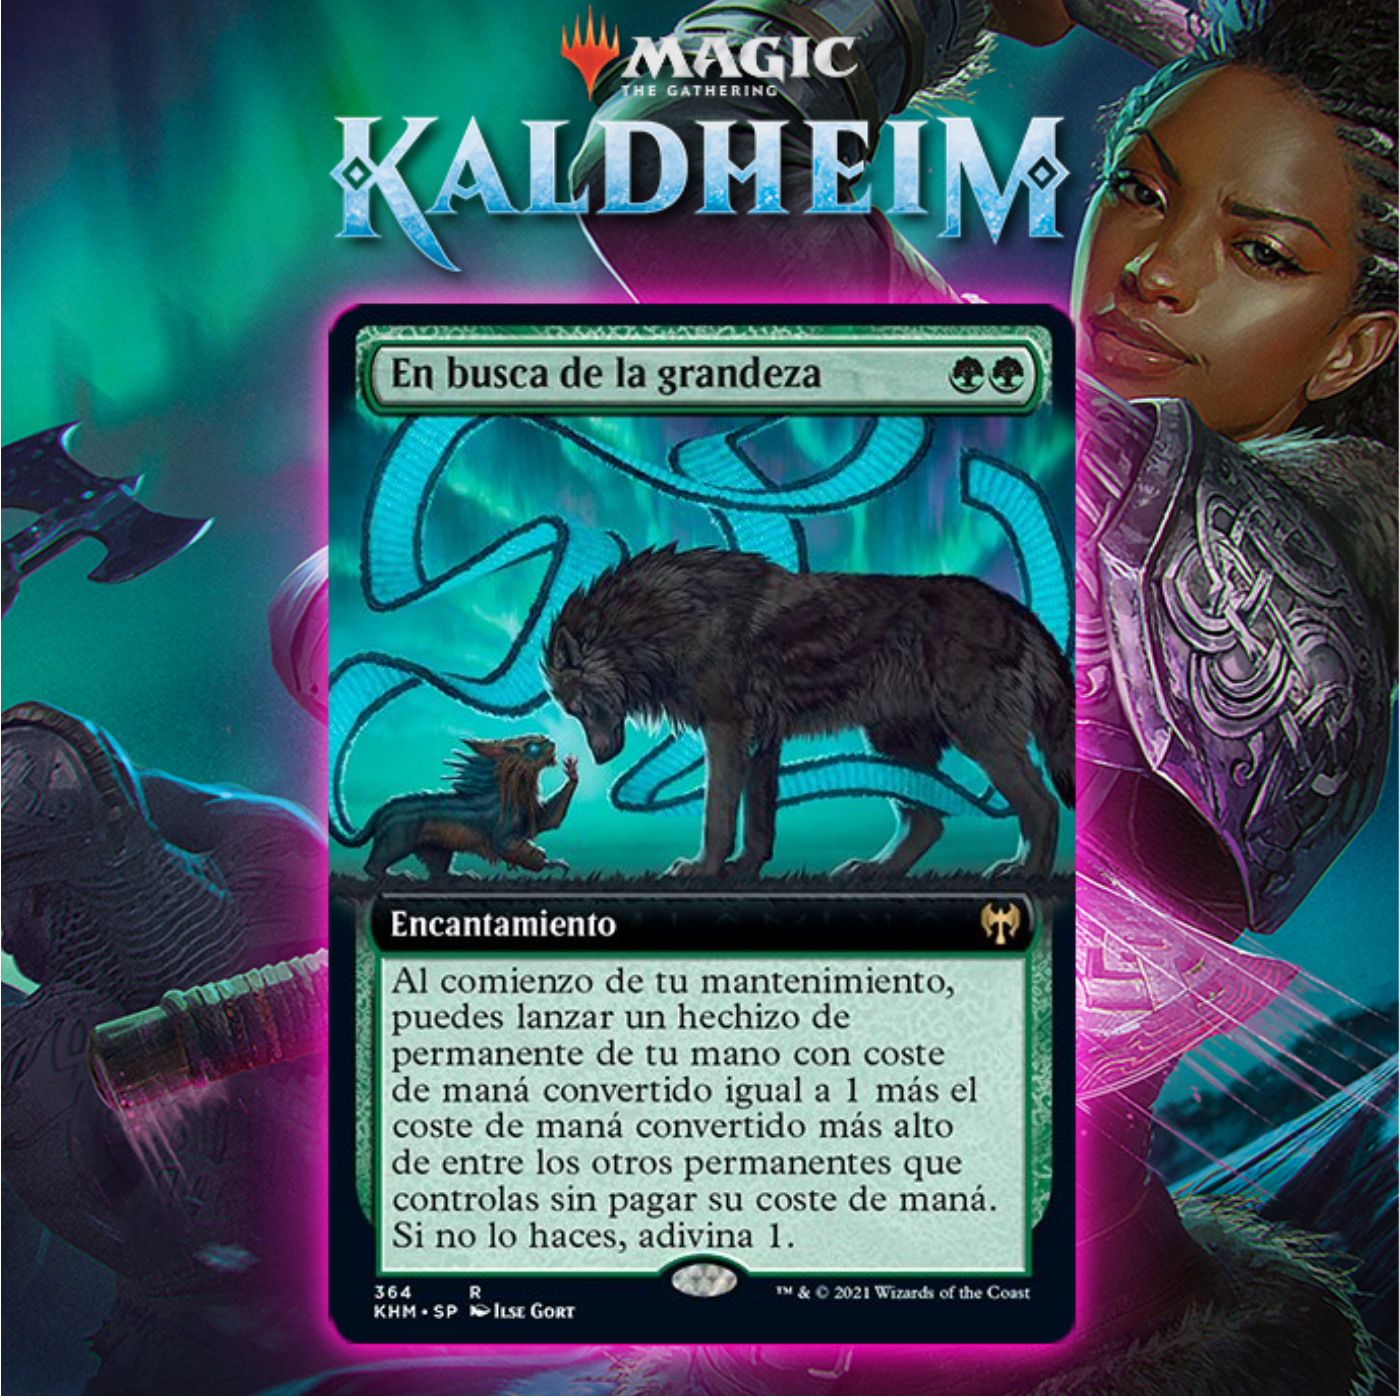 In Search of Greatness Gives Huge Boost To Green Decks In Kaldheim